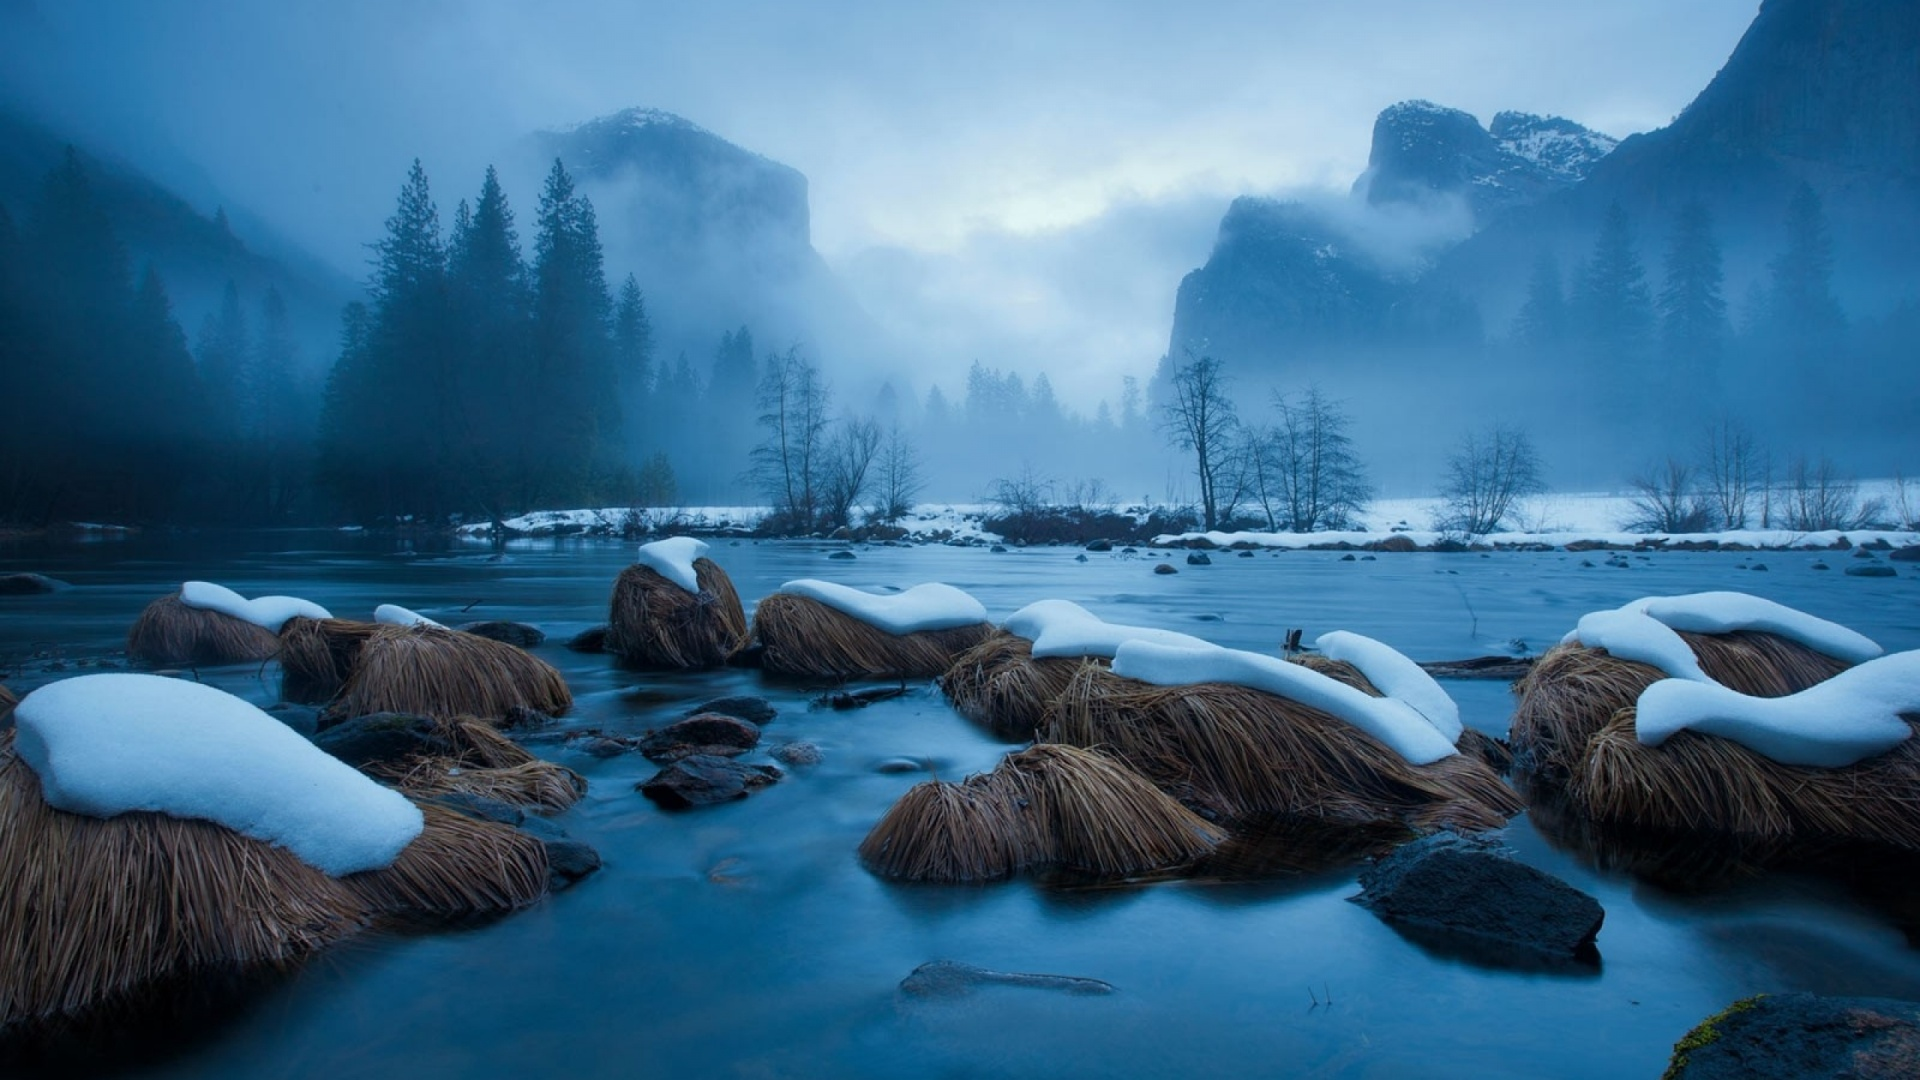 yosemite national park winter wallpapers 39411 1920x1080